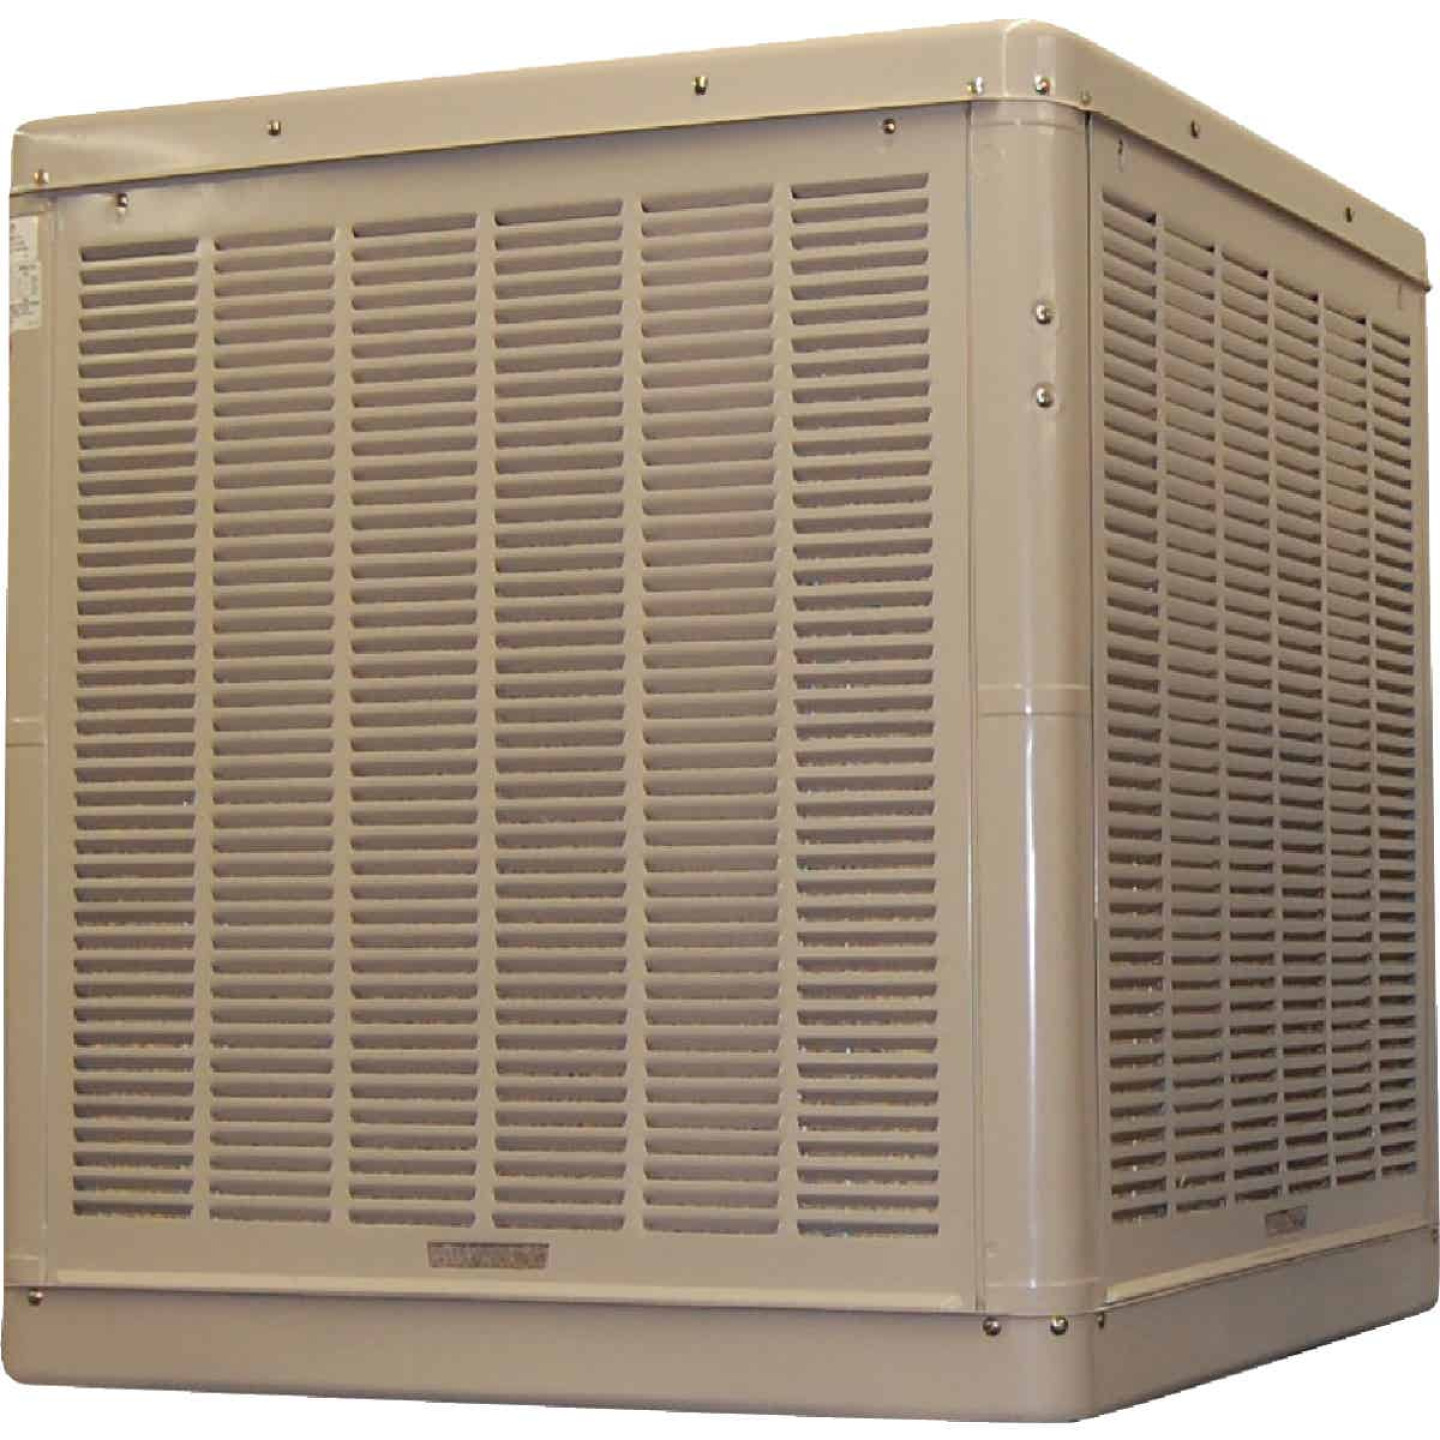 Essick 3300 to 6500 CFM Down Discharge Whole House Aspen Media Residential Evaporative Cooler, 1200-2400 Sq. Ft. Image 1